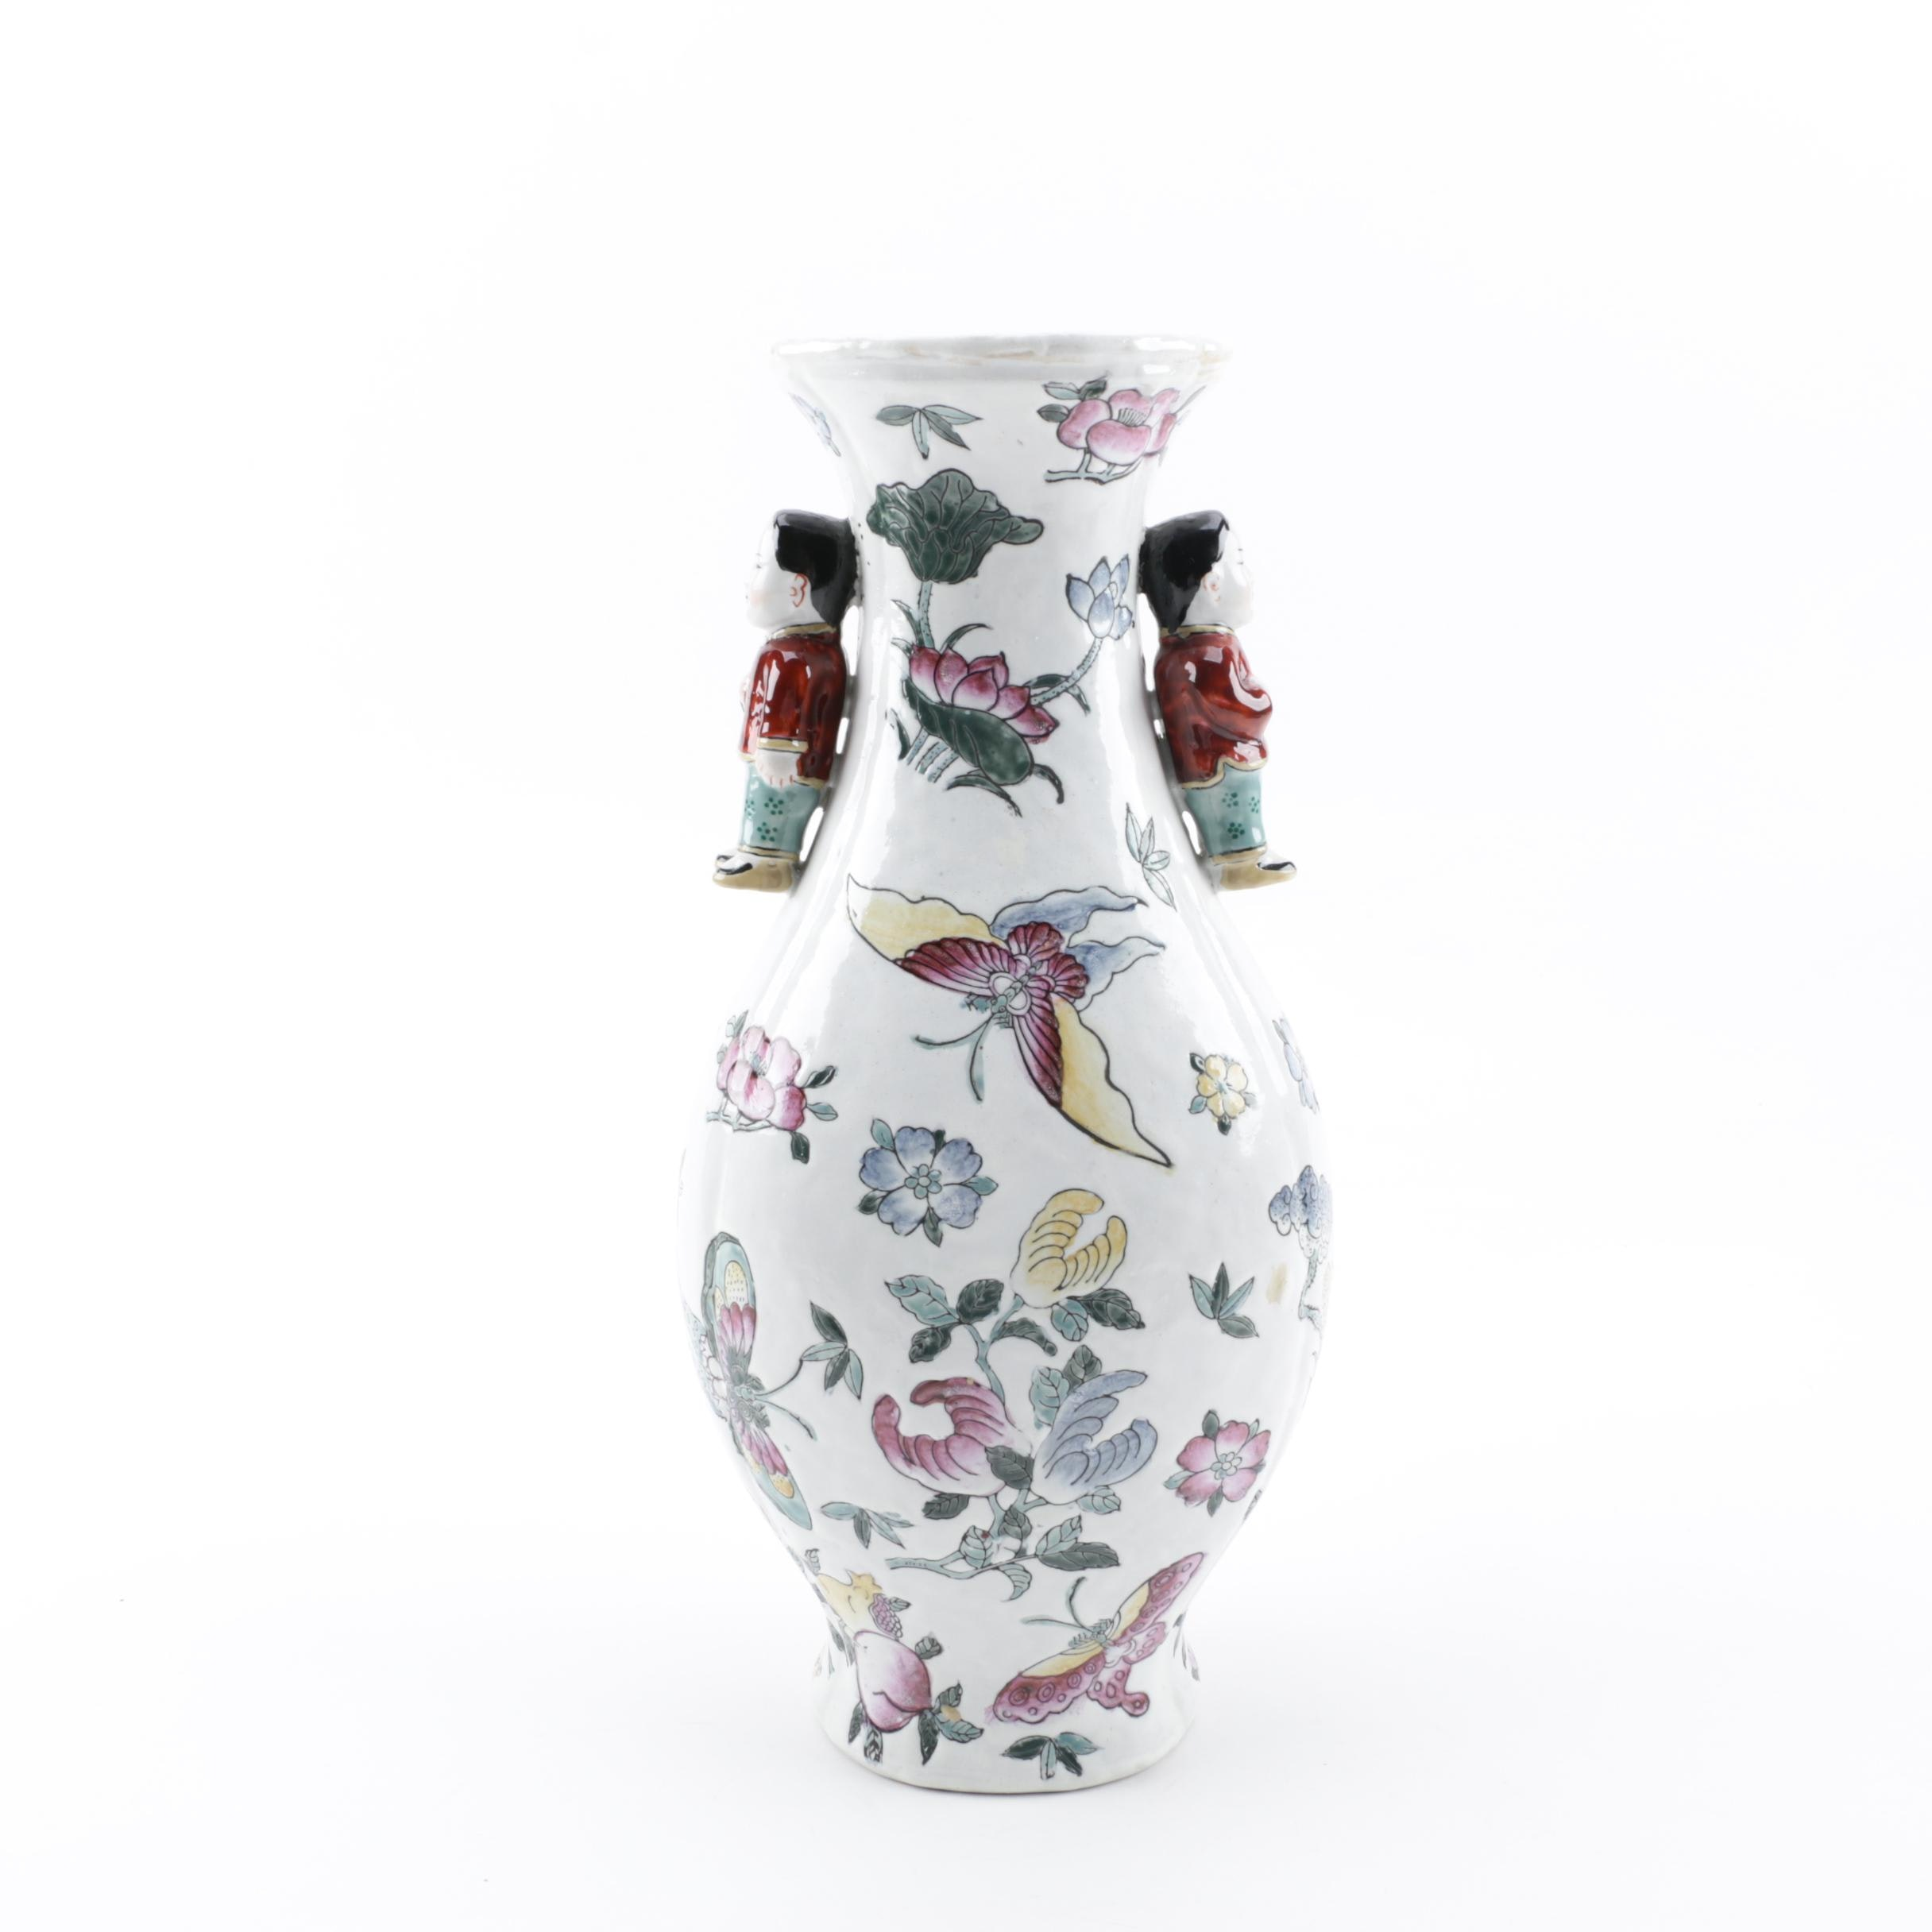 Chinese Floral and Butterfly Themed Vase with Figurative Handles